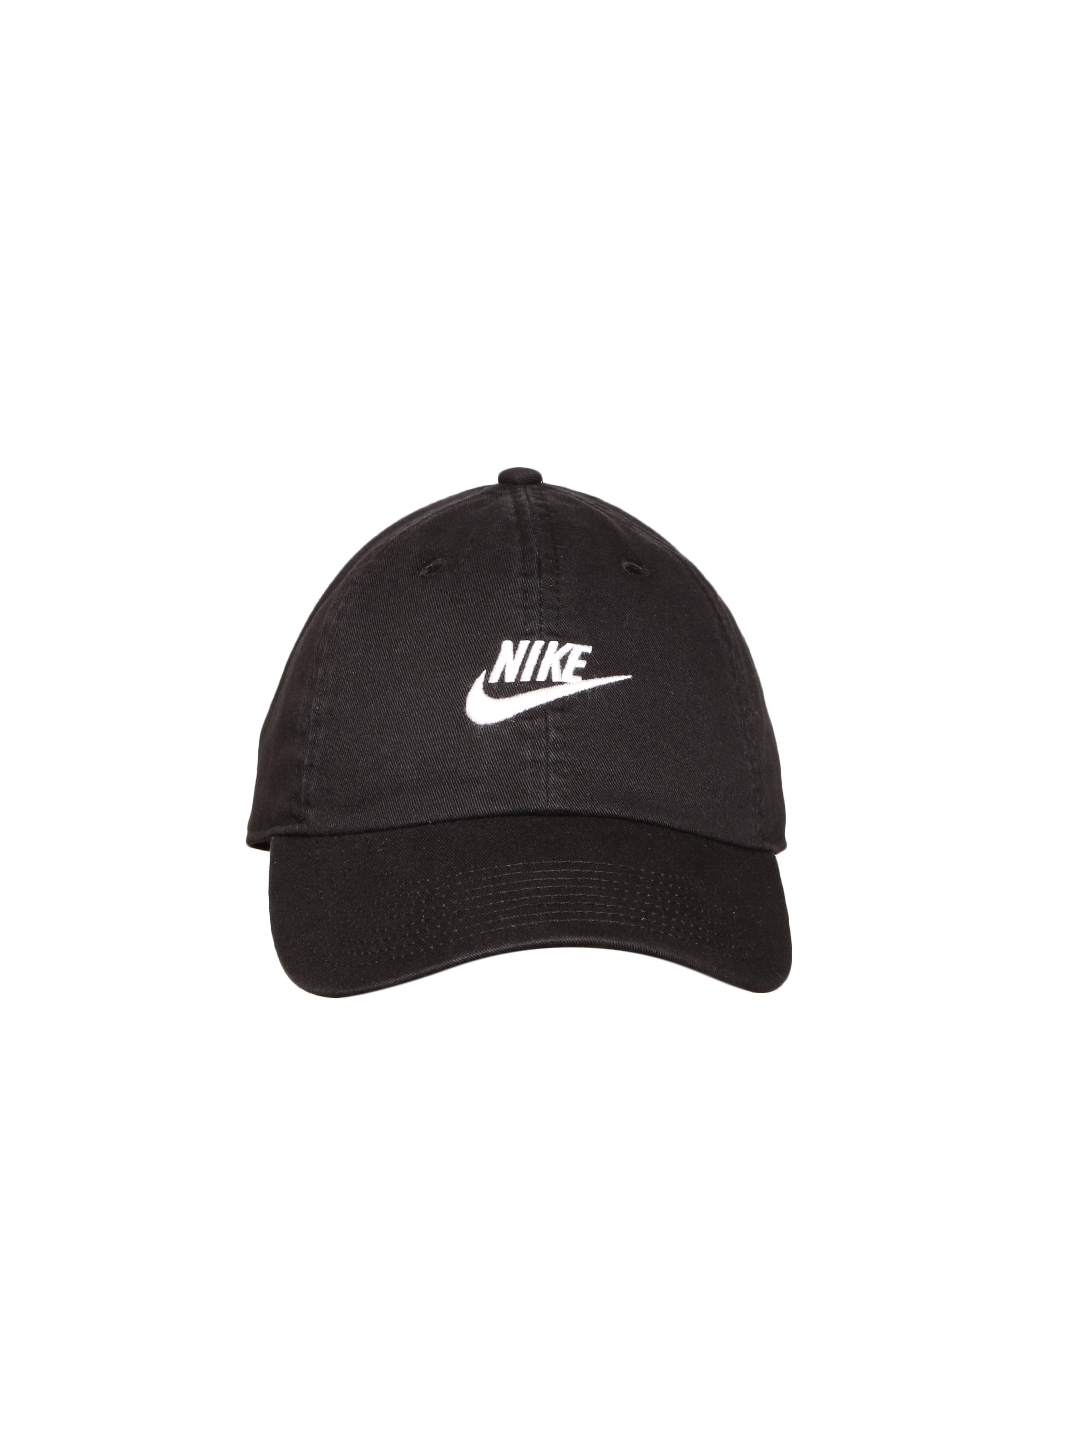 Nike Cap - Buy Nike Caps for Men   Women Online in India  4c1ee90fd0ce